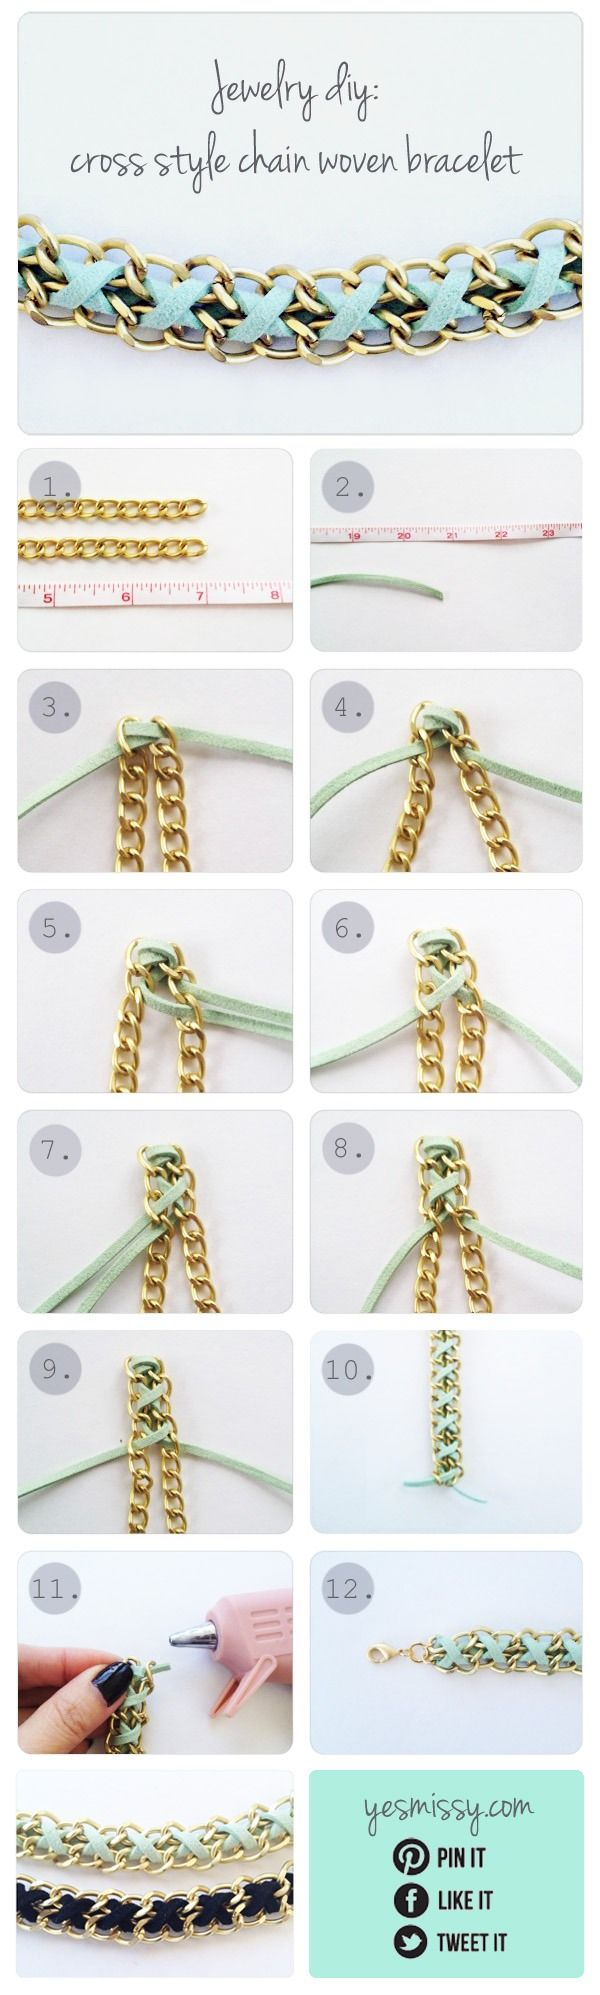 Cool Shoe Lace Bracelets | Trusper